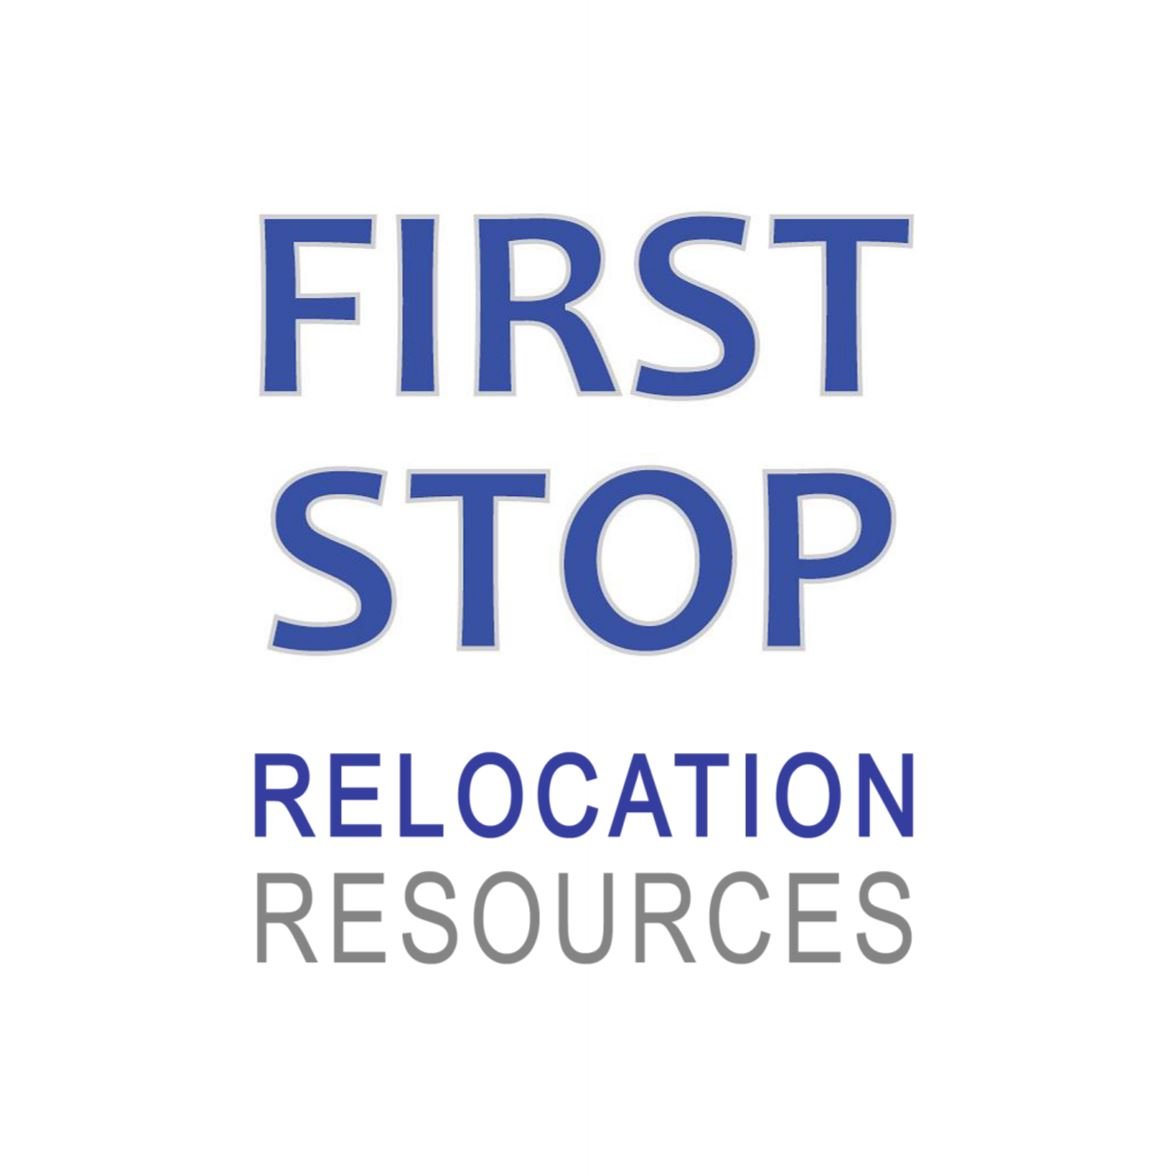 First Stop Relocation Resources